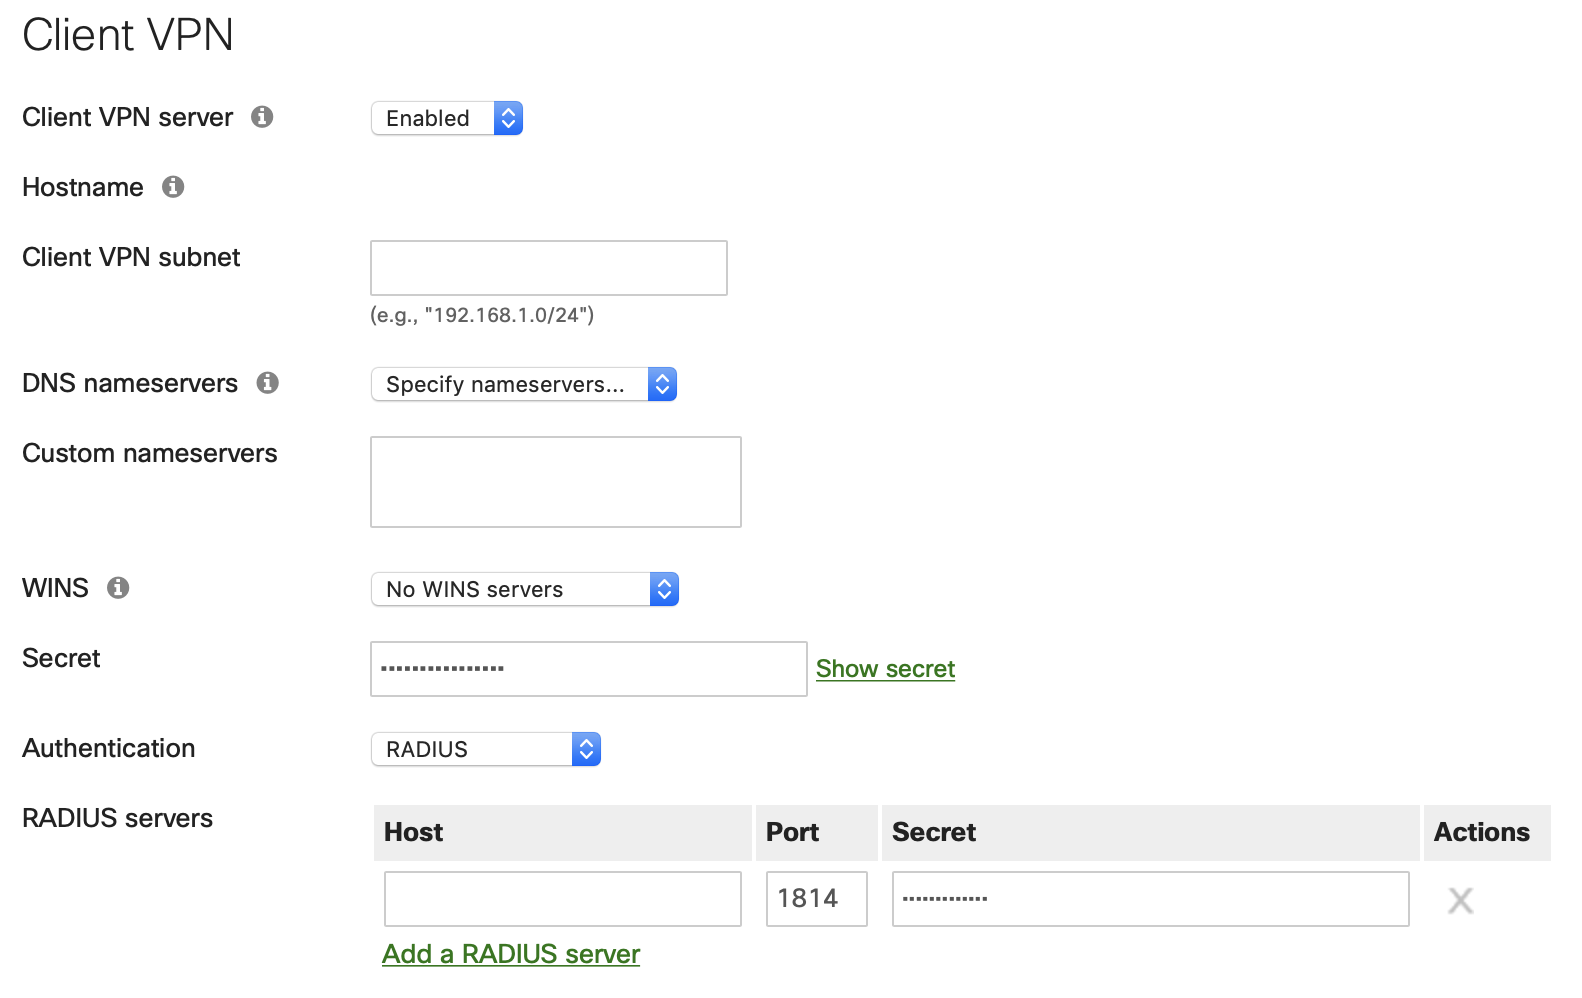 Need help setting up Duo Security for 2FA with Meraki MX84 VPN